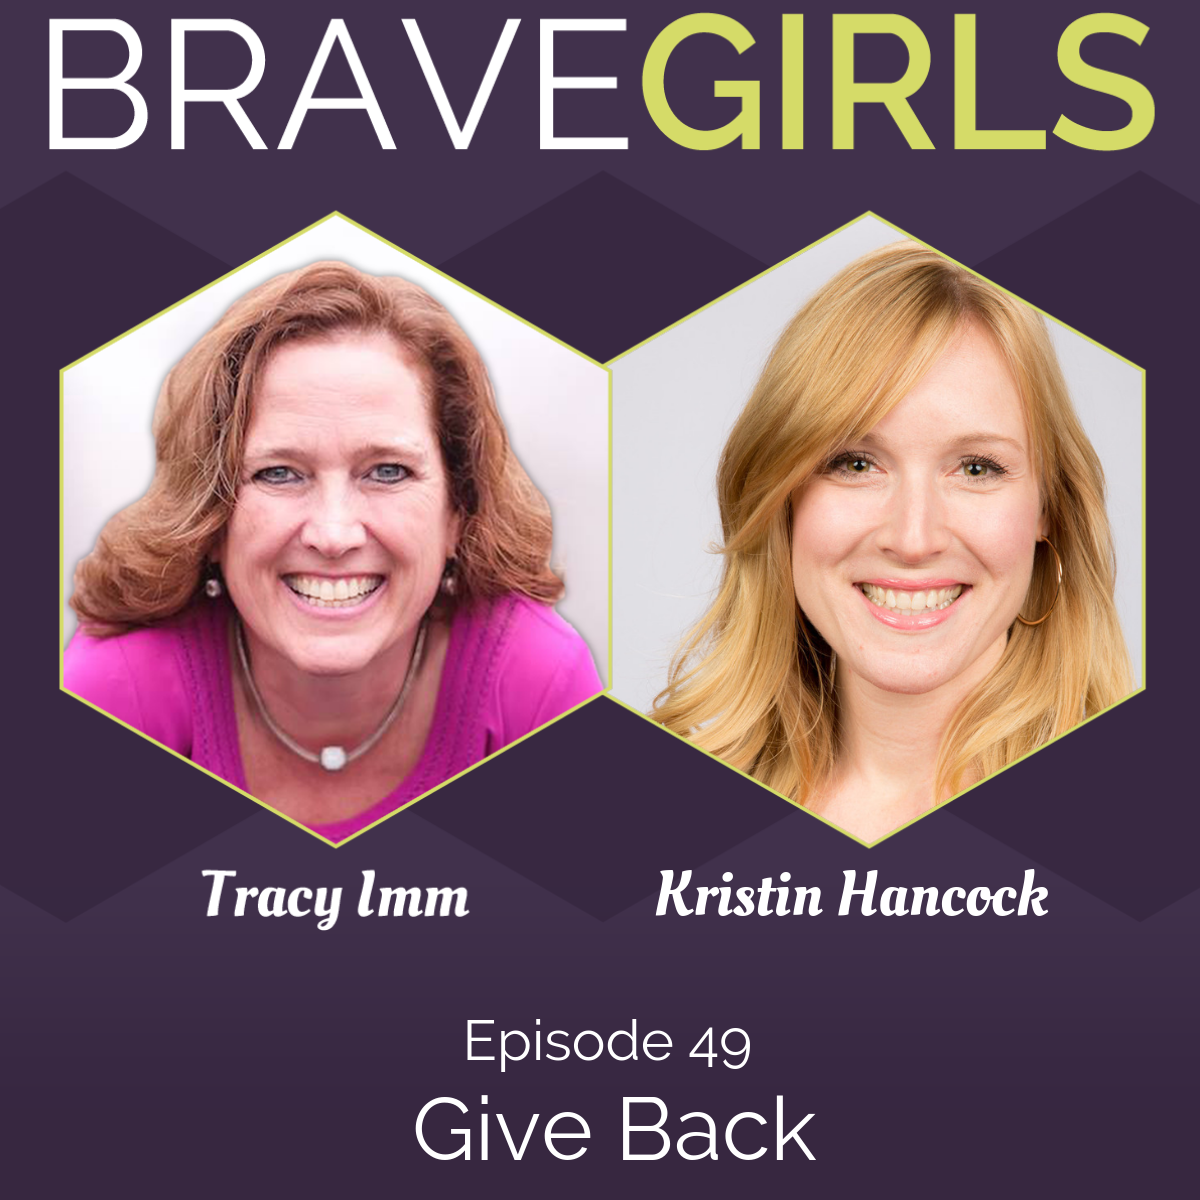 Artwork for Give Back with Kristin Hancock